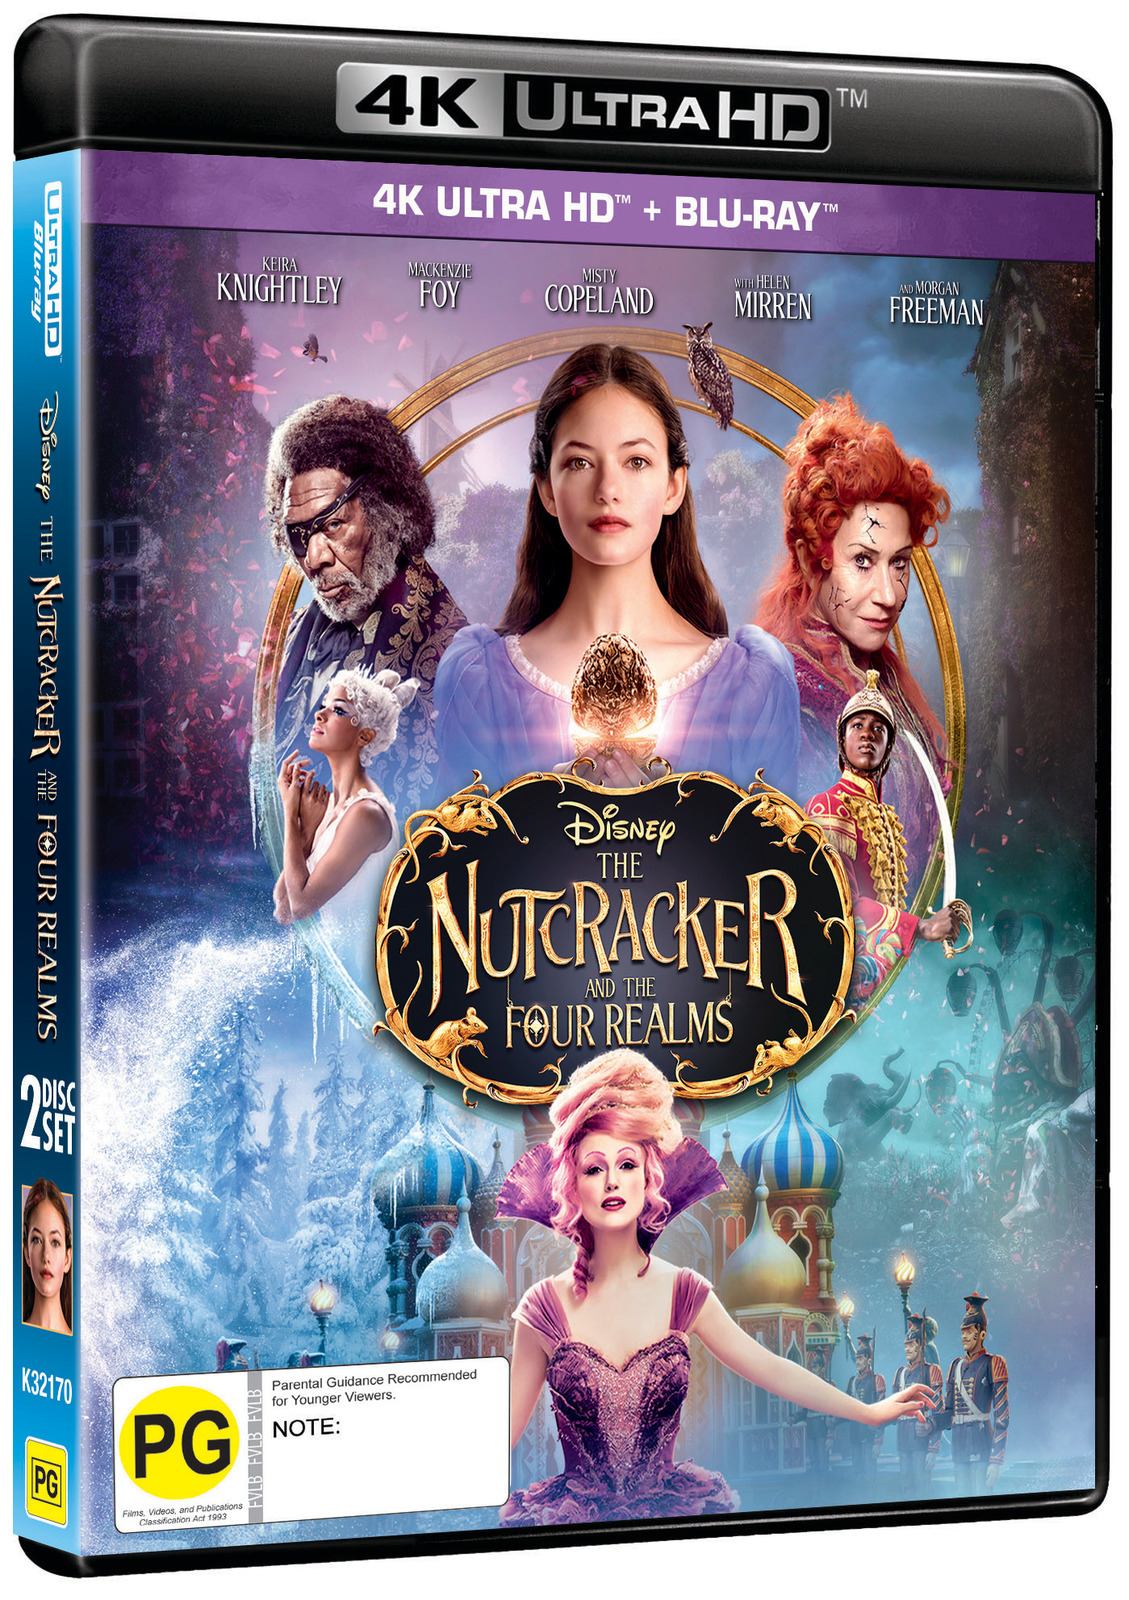 The Nutcracker And The Four Realms on UHD Blu-ray image